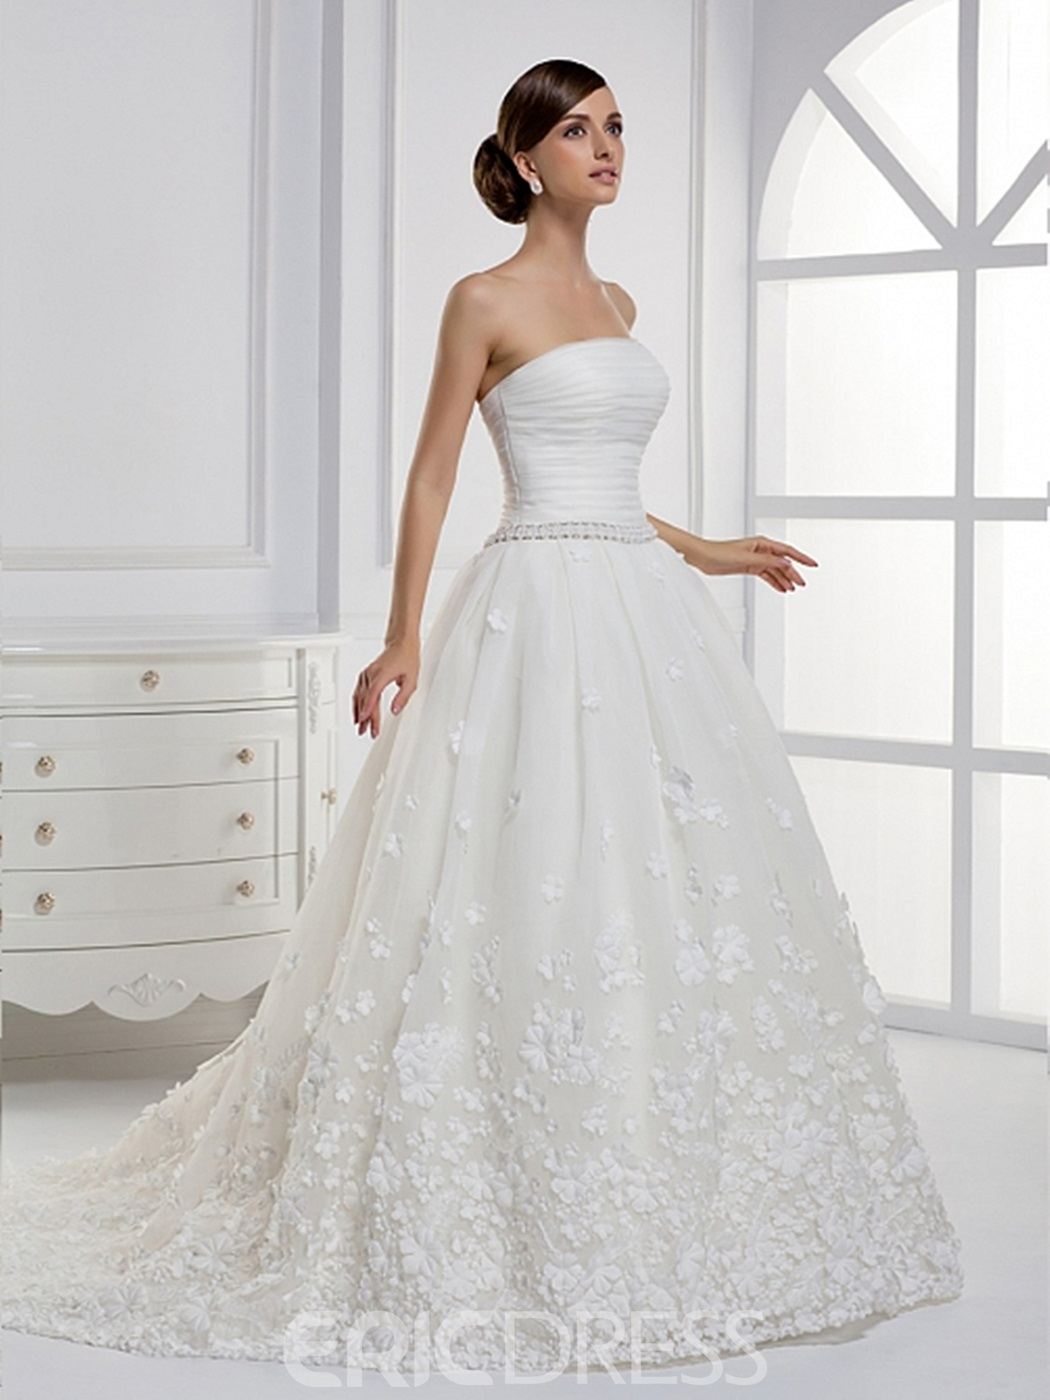 Noble A-line Strapless Applique Floor-length Court Train Wedding Dress